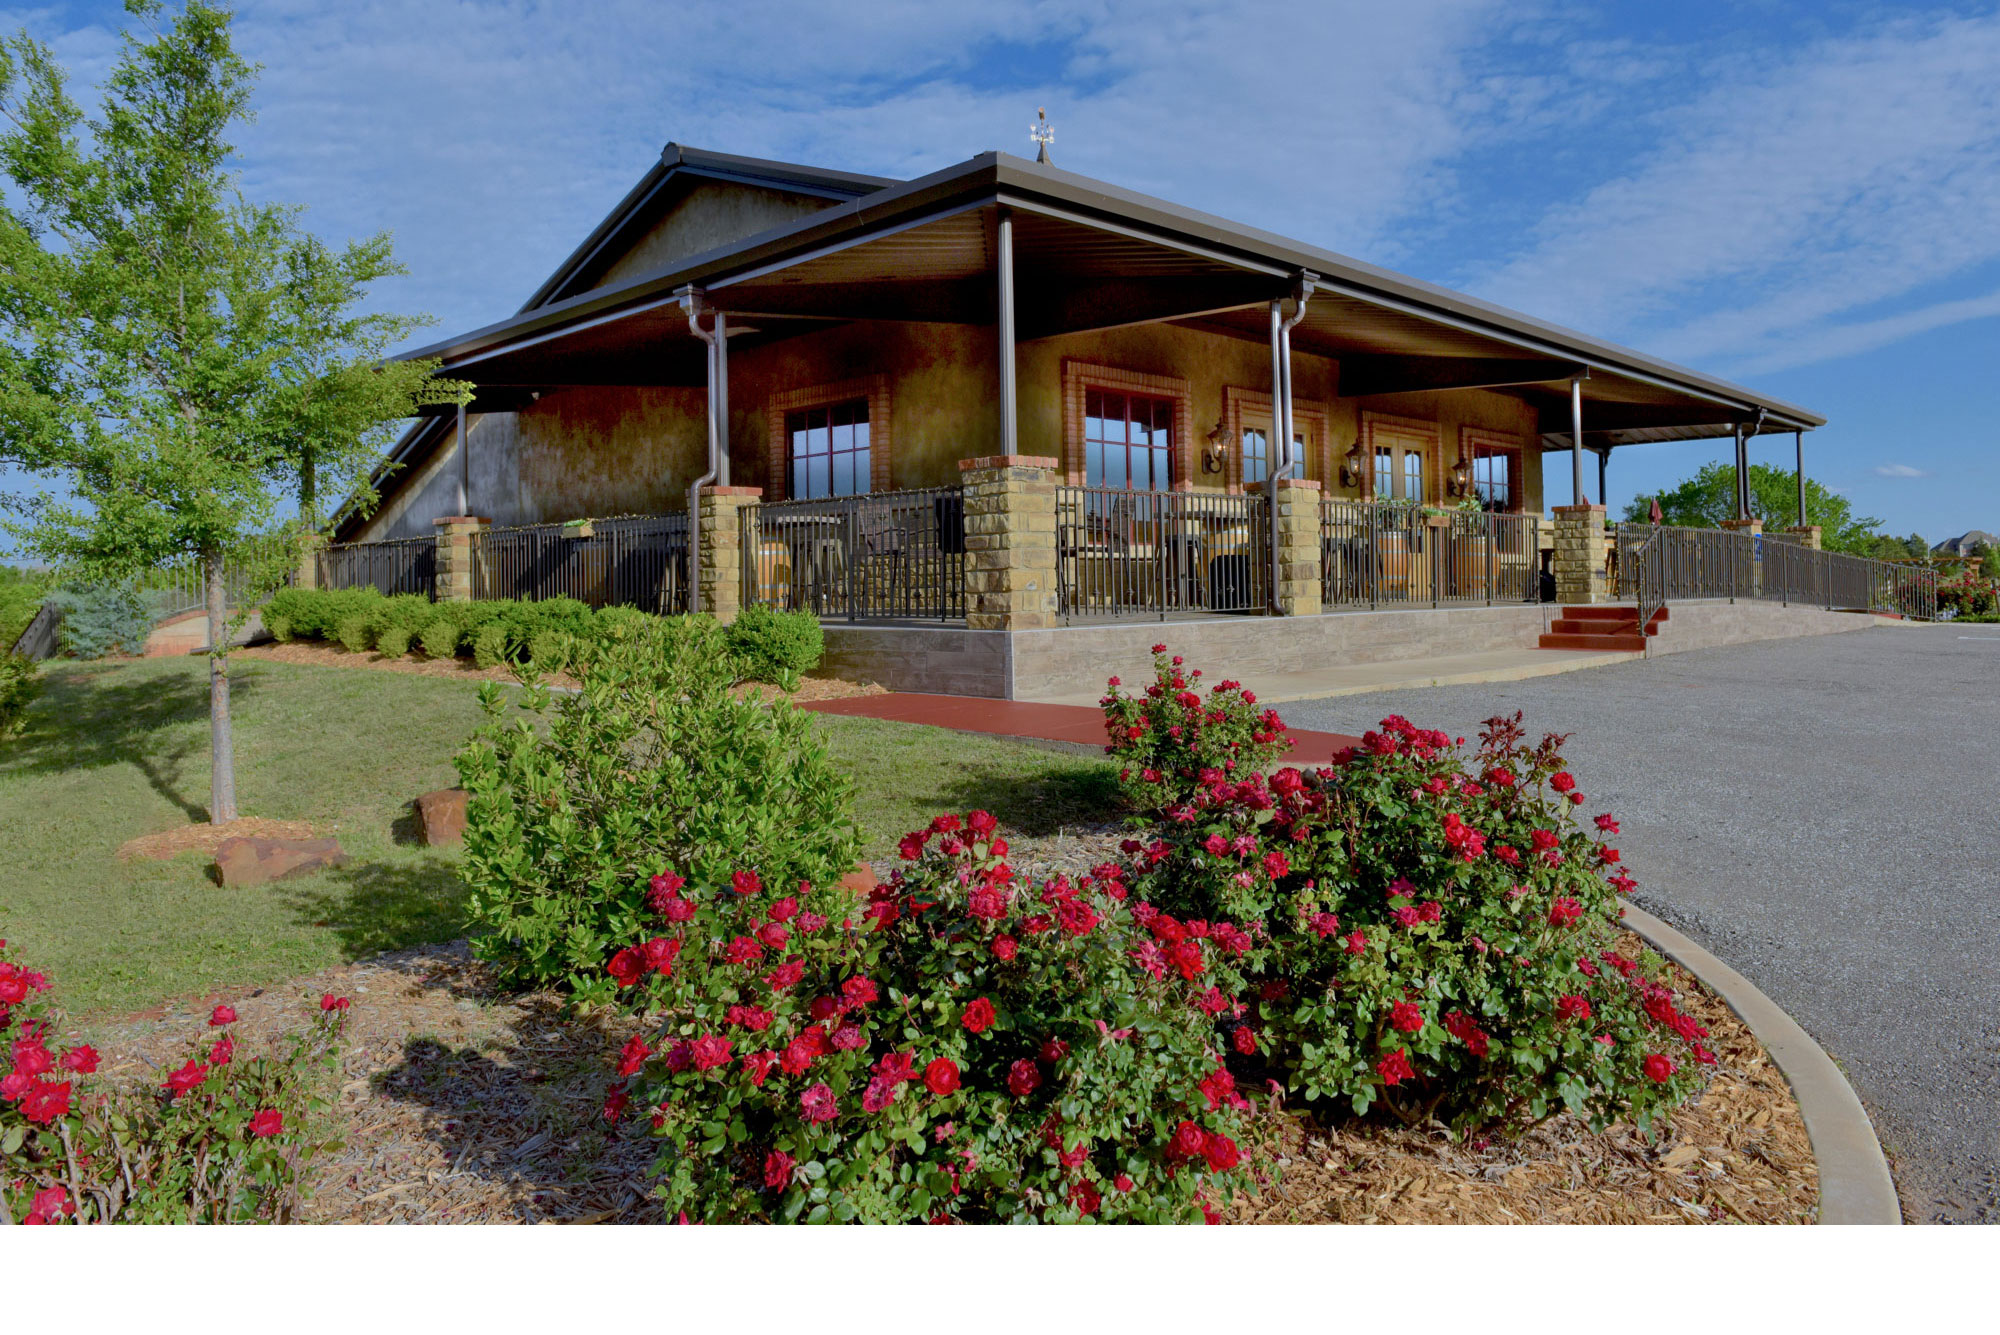 Clauren Ridge Vineyard and Winery